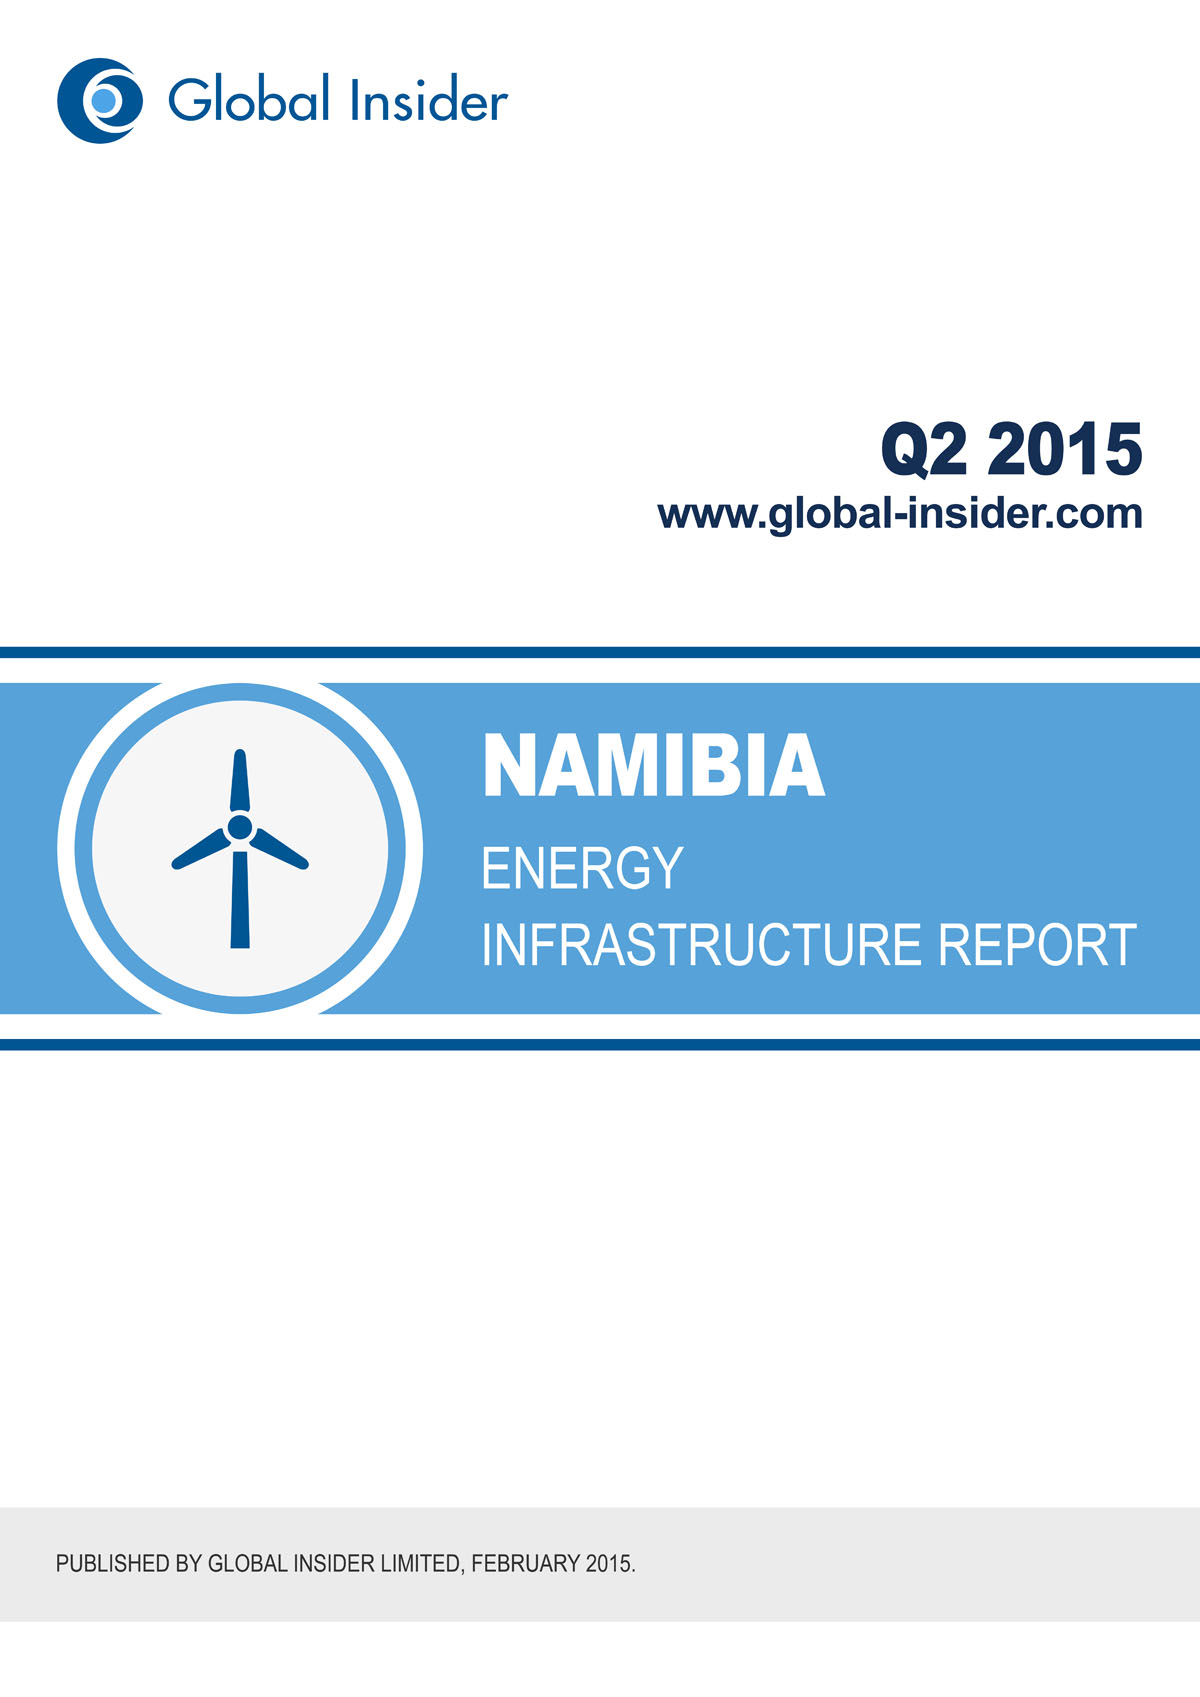 Namibia Energy Infrastructure Report